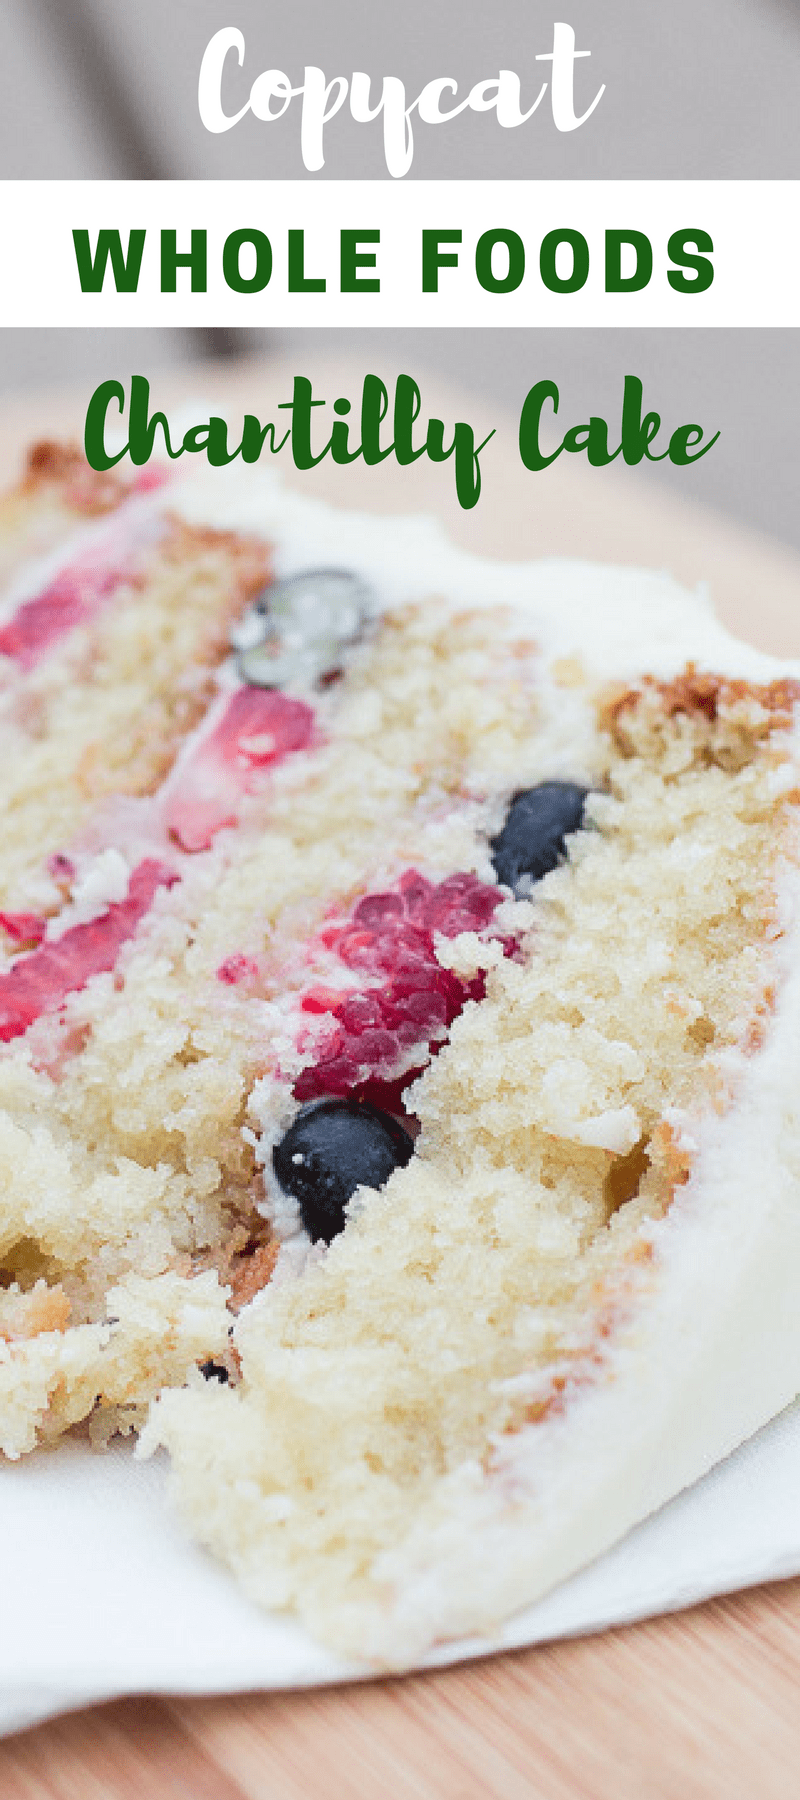 Whole Foods Strawberry And Cream Cake Recipe